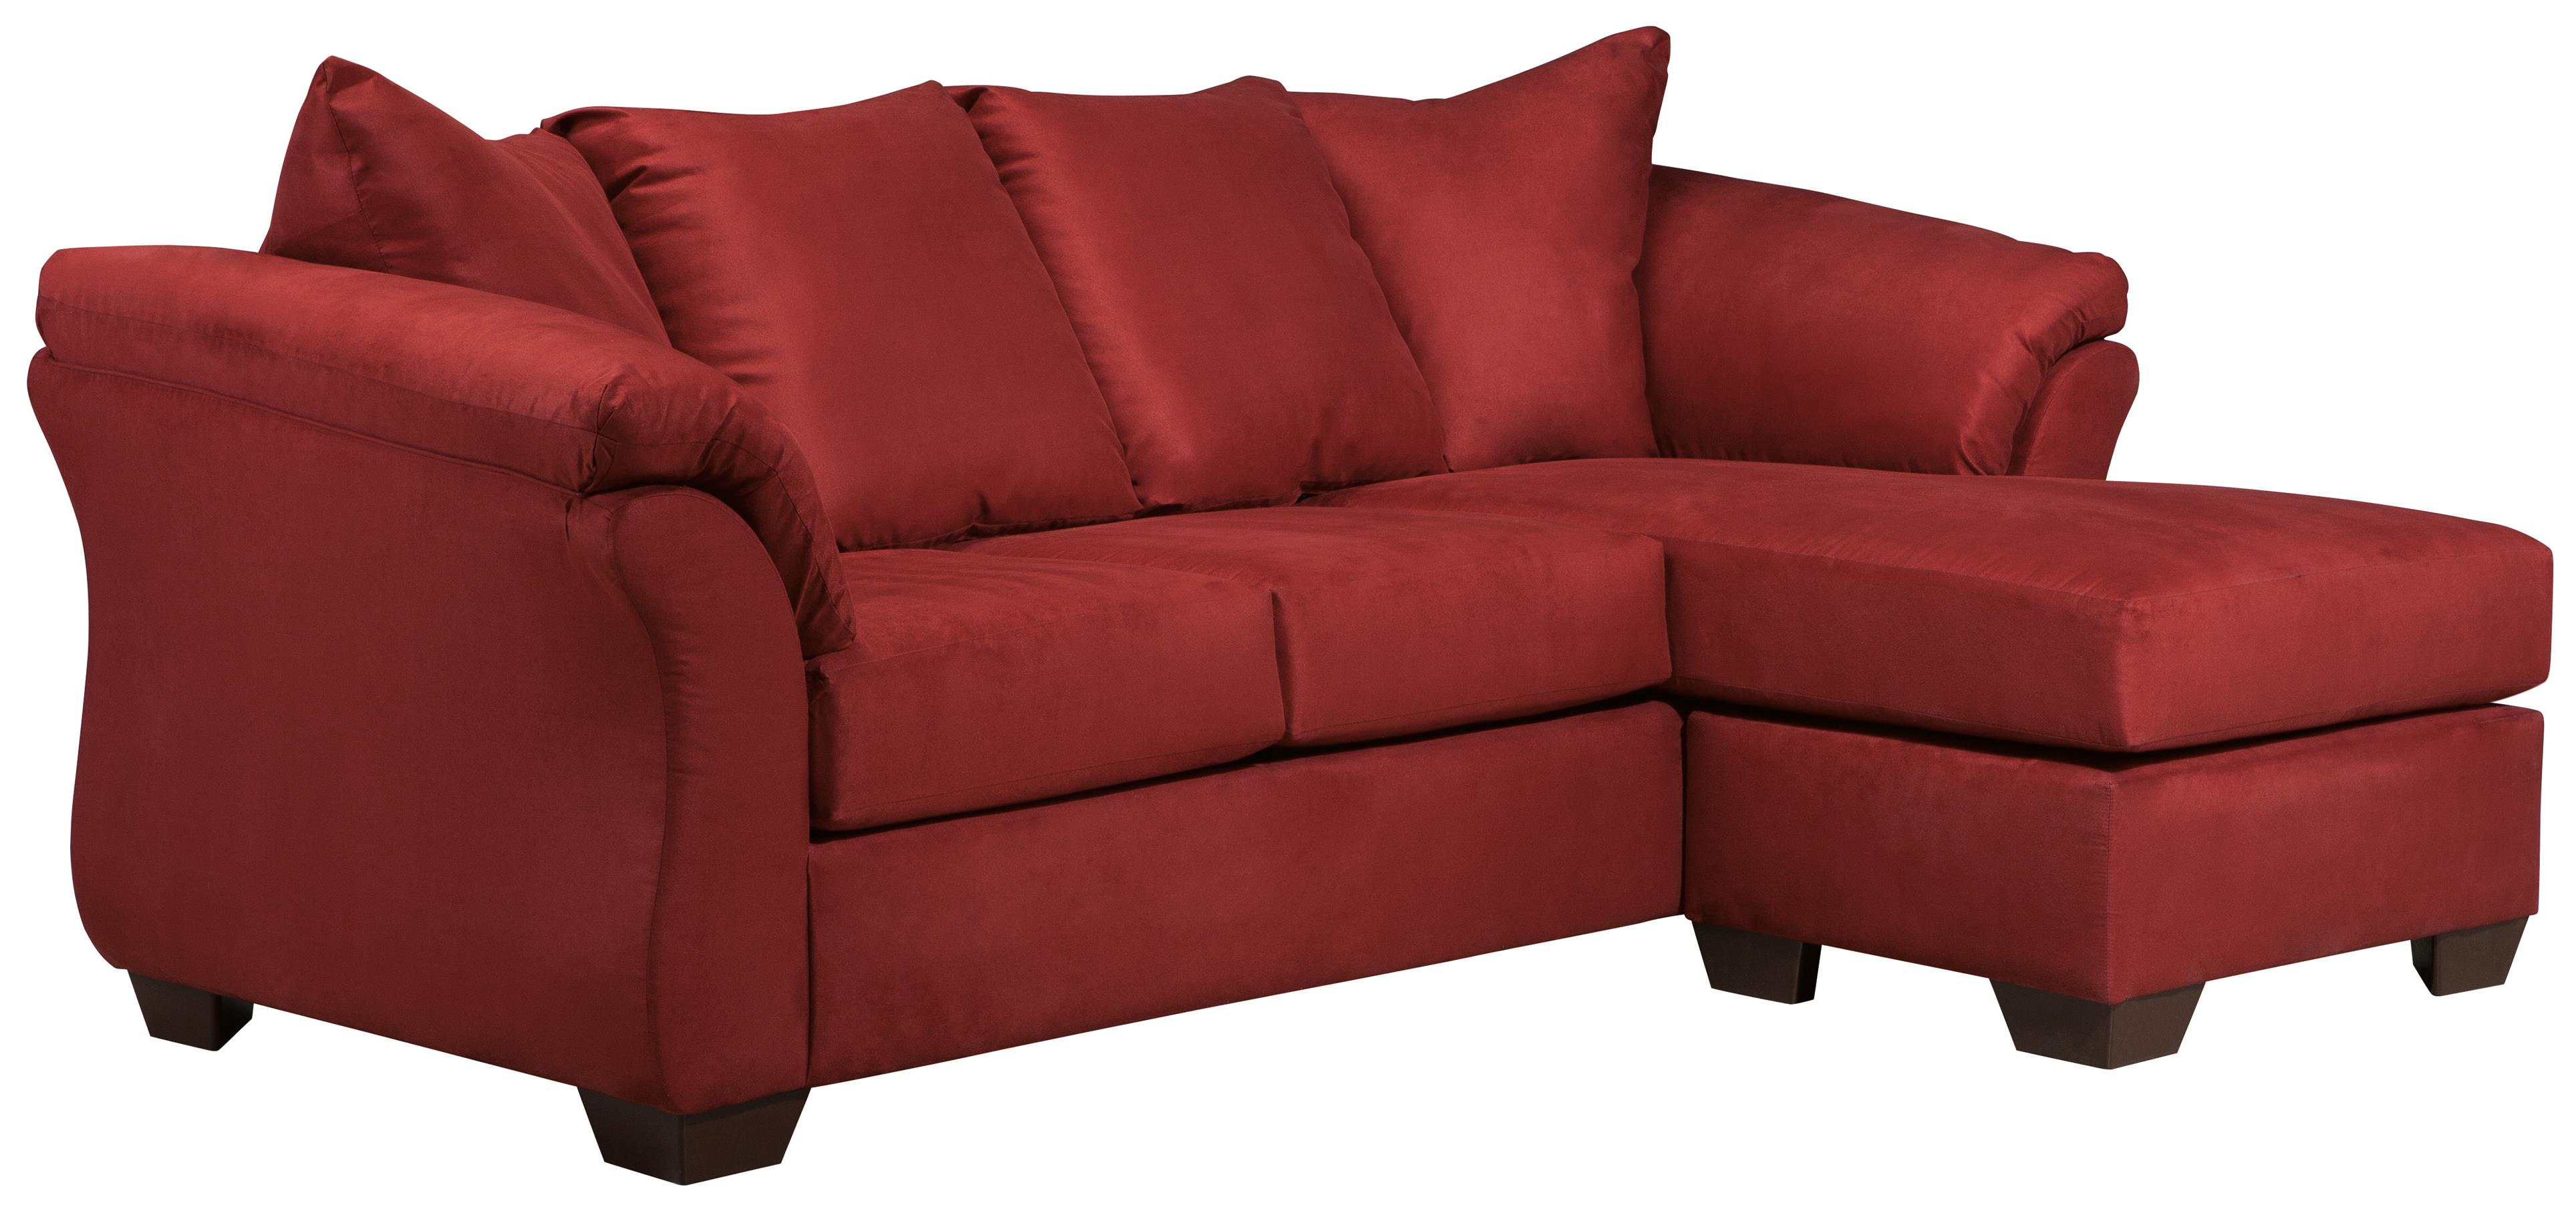 Darcy - Salsa Sofa Chaise by Signature Design by Ashley at Sparks HomeStore